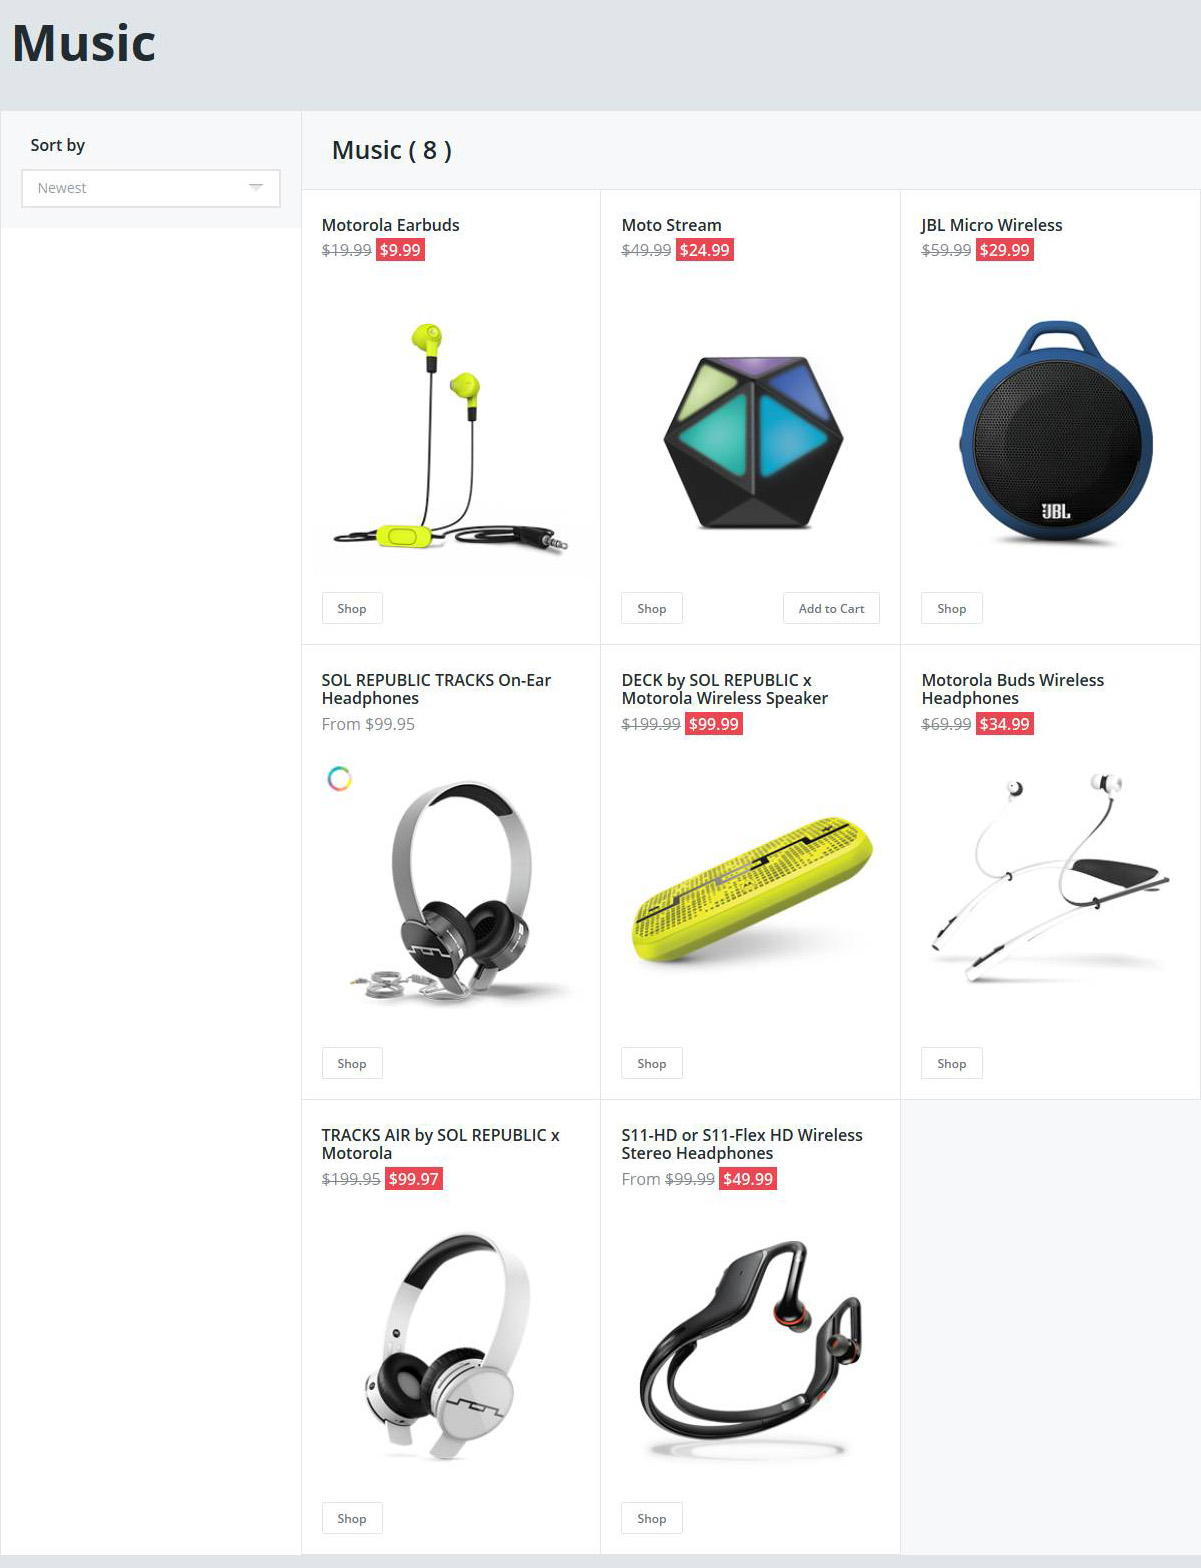 48-hour_sale_off_music_accessories_before_Black_Friday_Motorola-02